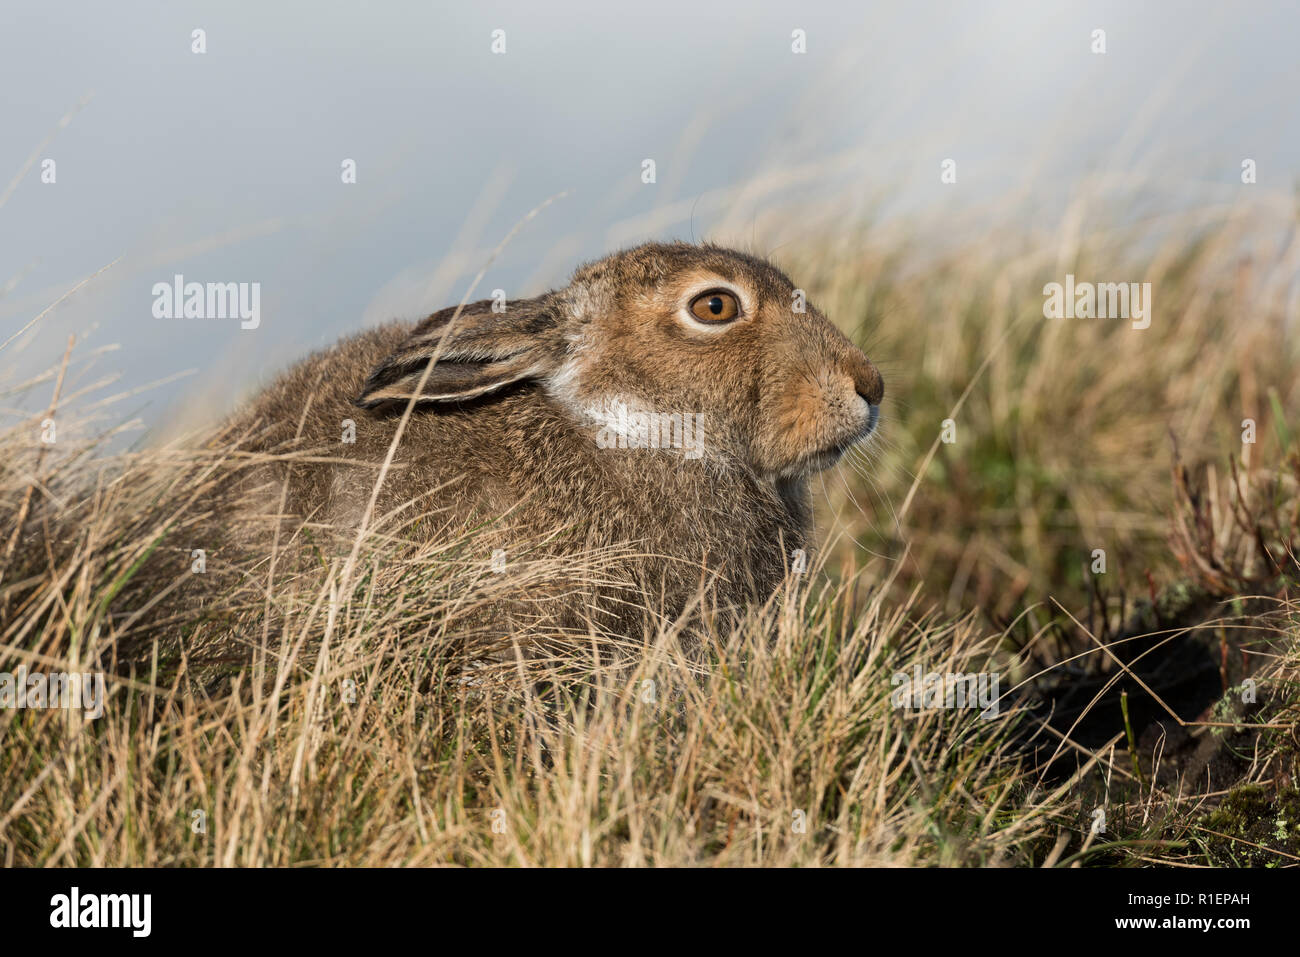 Mountain hare in summer pelage, Peak District National Park, UK - Stock Image